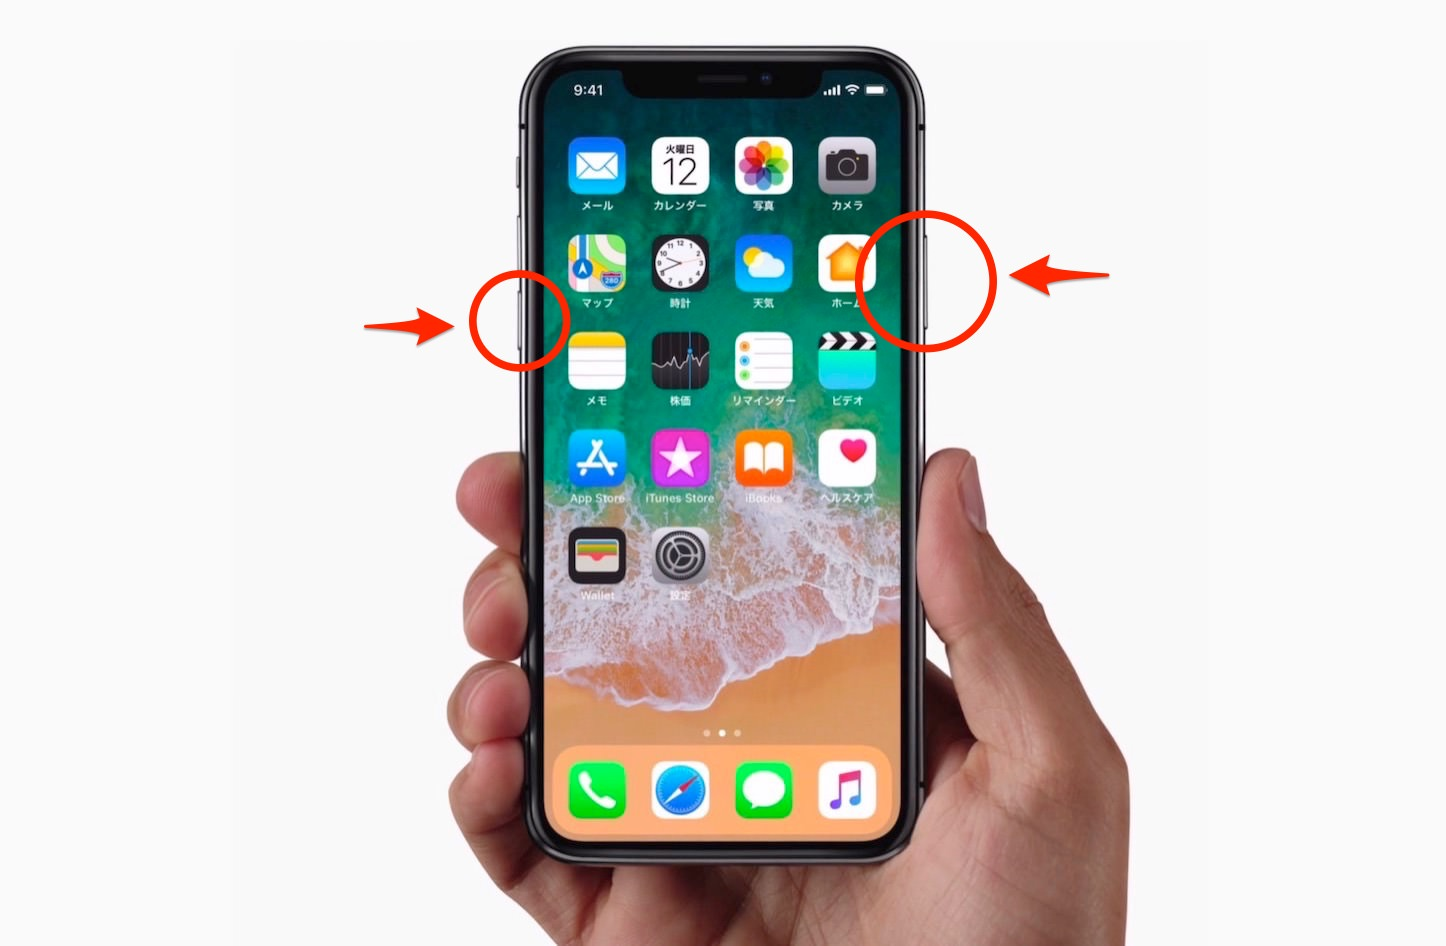 How to Turn iPhoneX Off